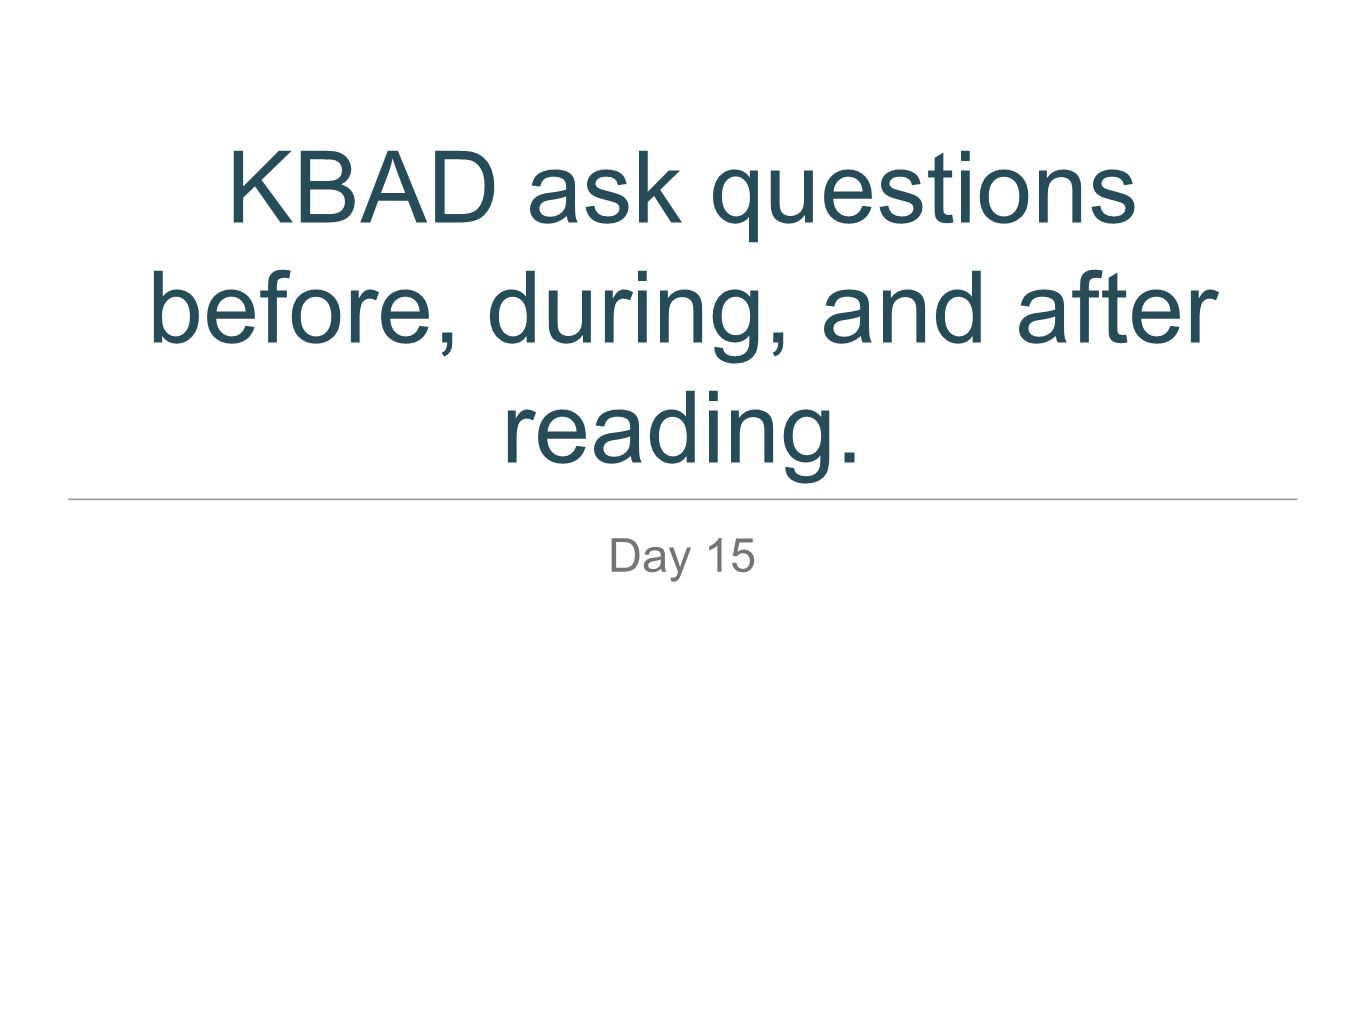 KBAD ask questions before, during, and after reading.